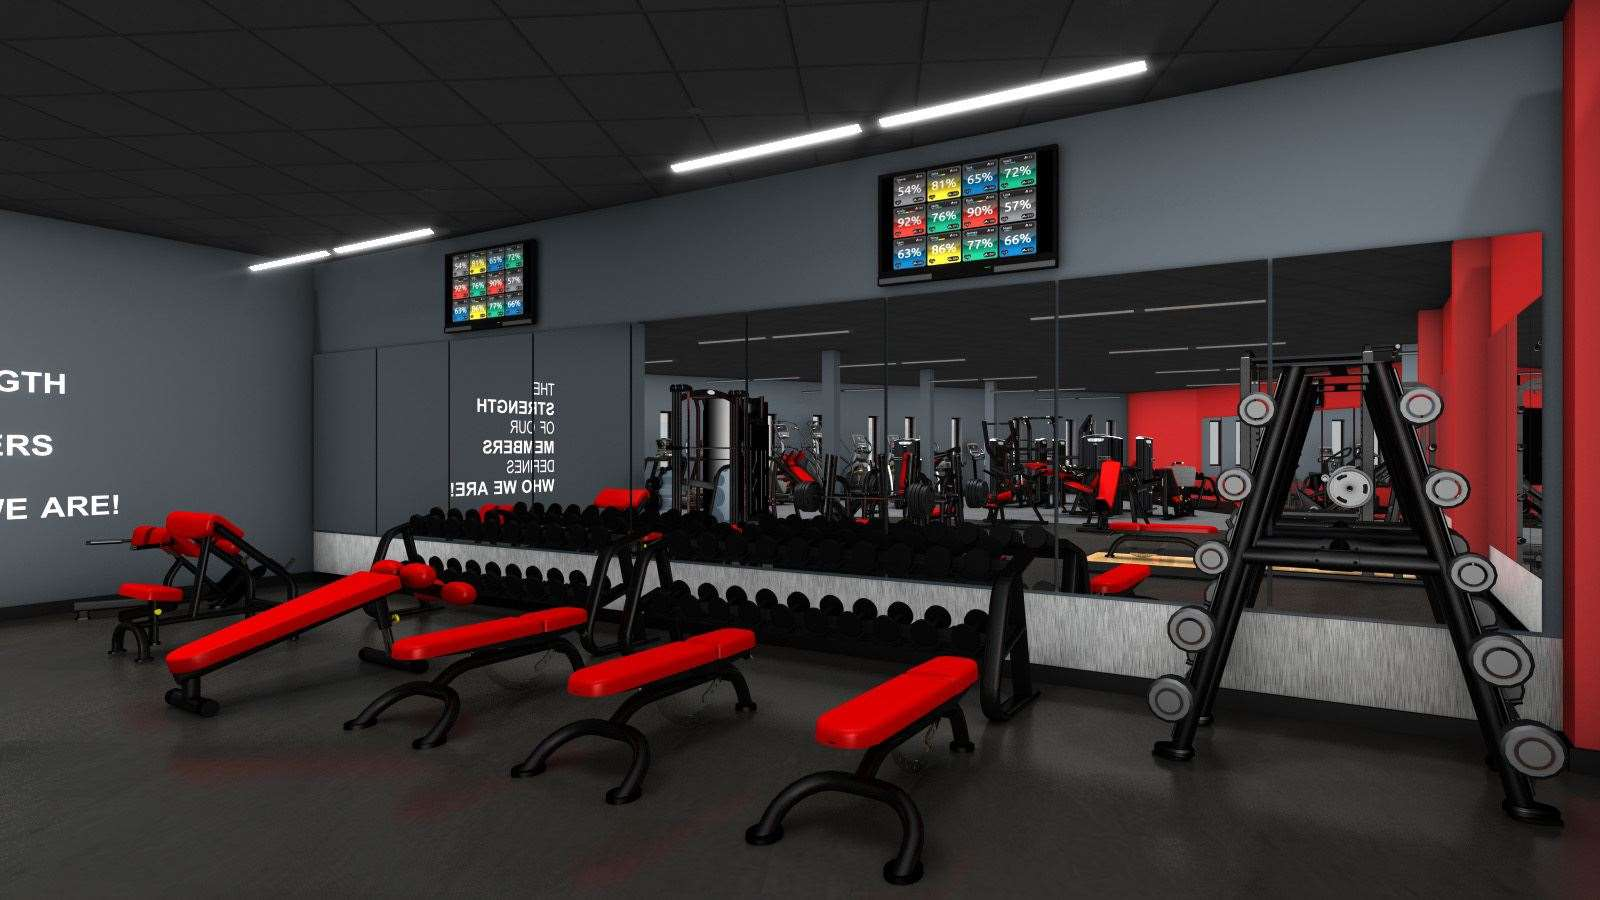 What the new gym will look like